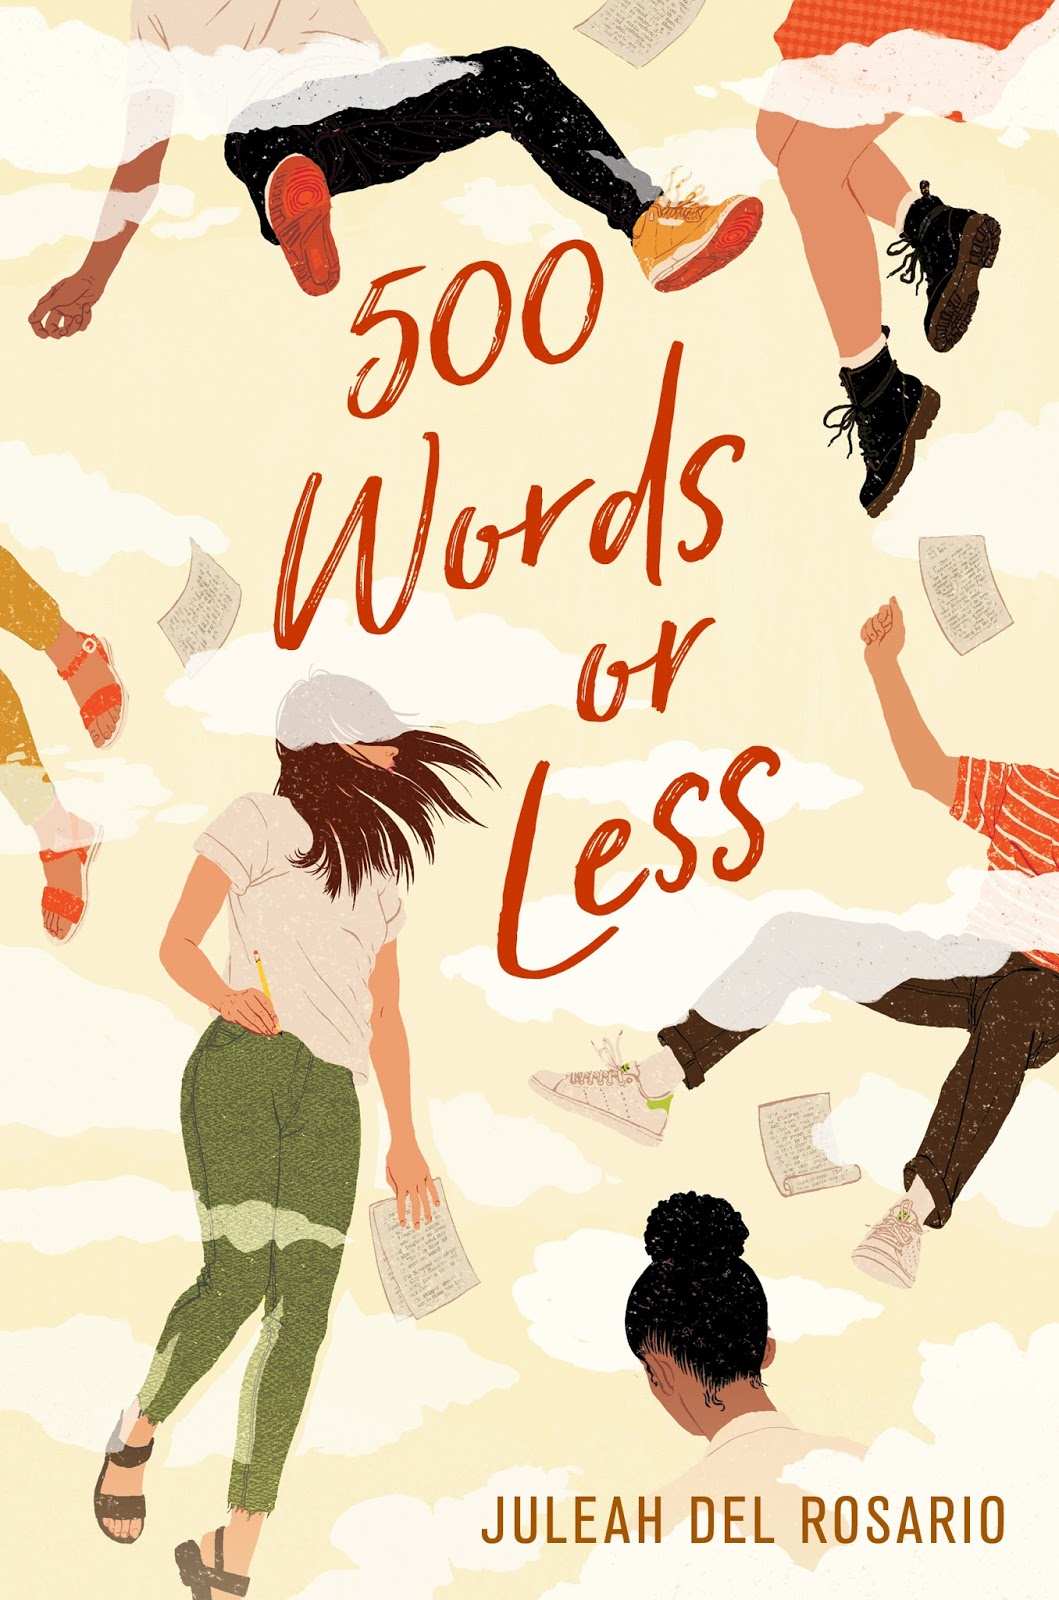 500 Words or Less by Juleah Dos Rosario